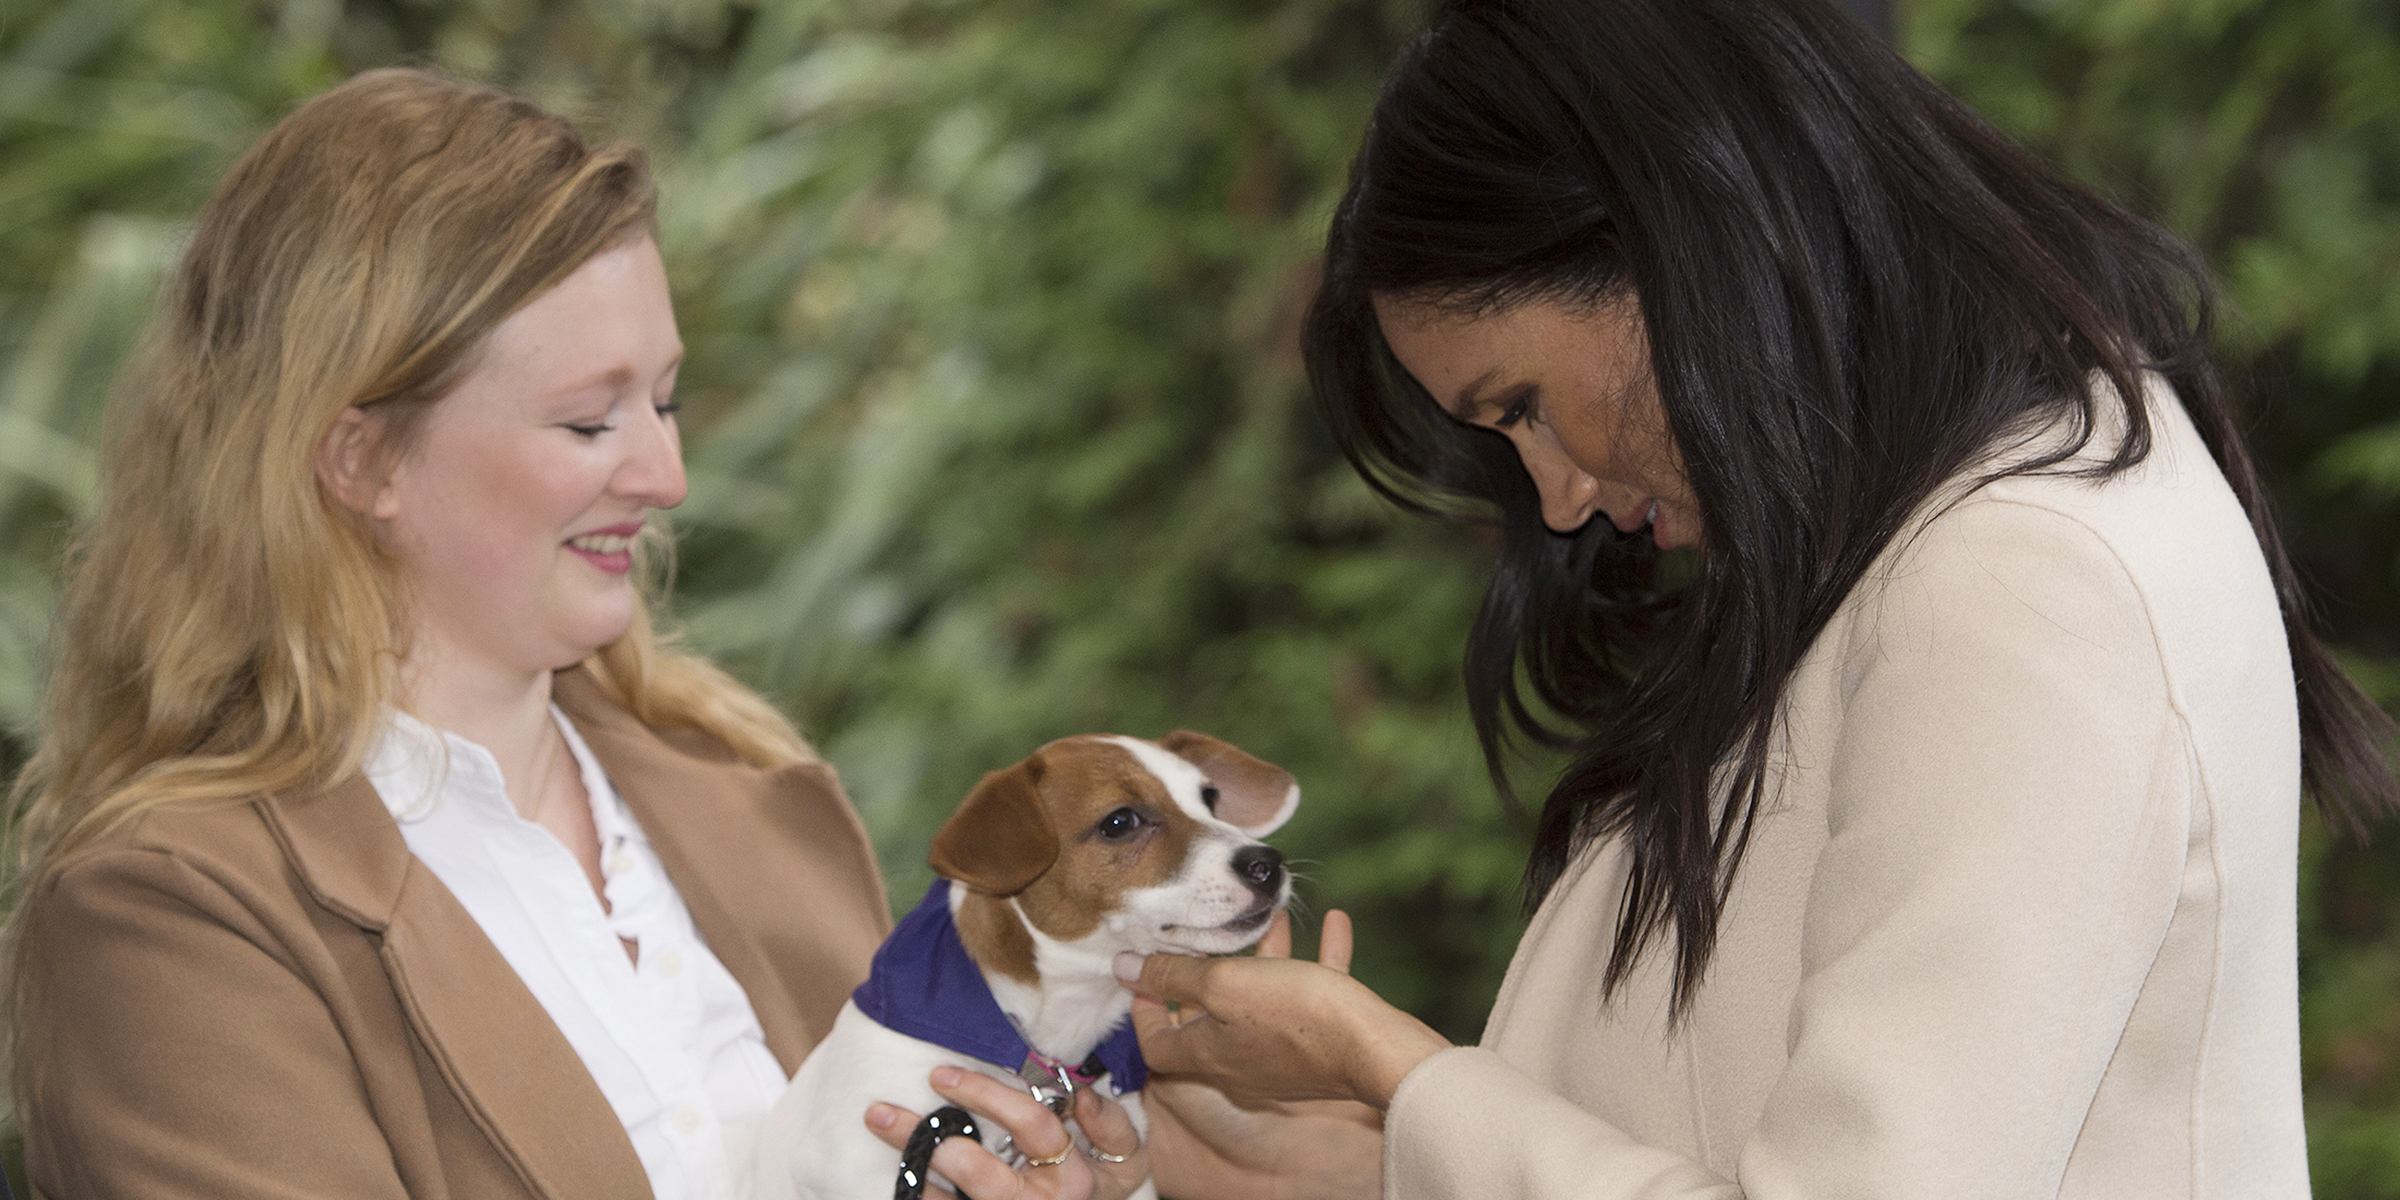 22be9006035e2 Meghan Markle shares heartfelt message on the joy of pet adoption. The  Duchess of Sussex ...